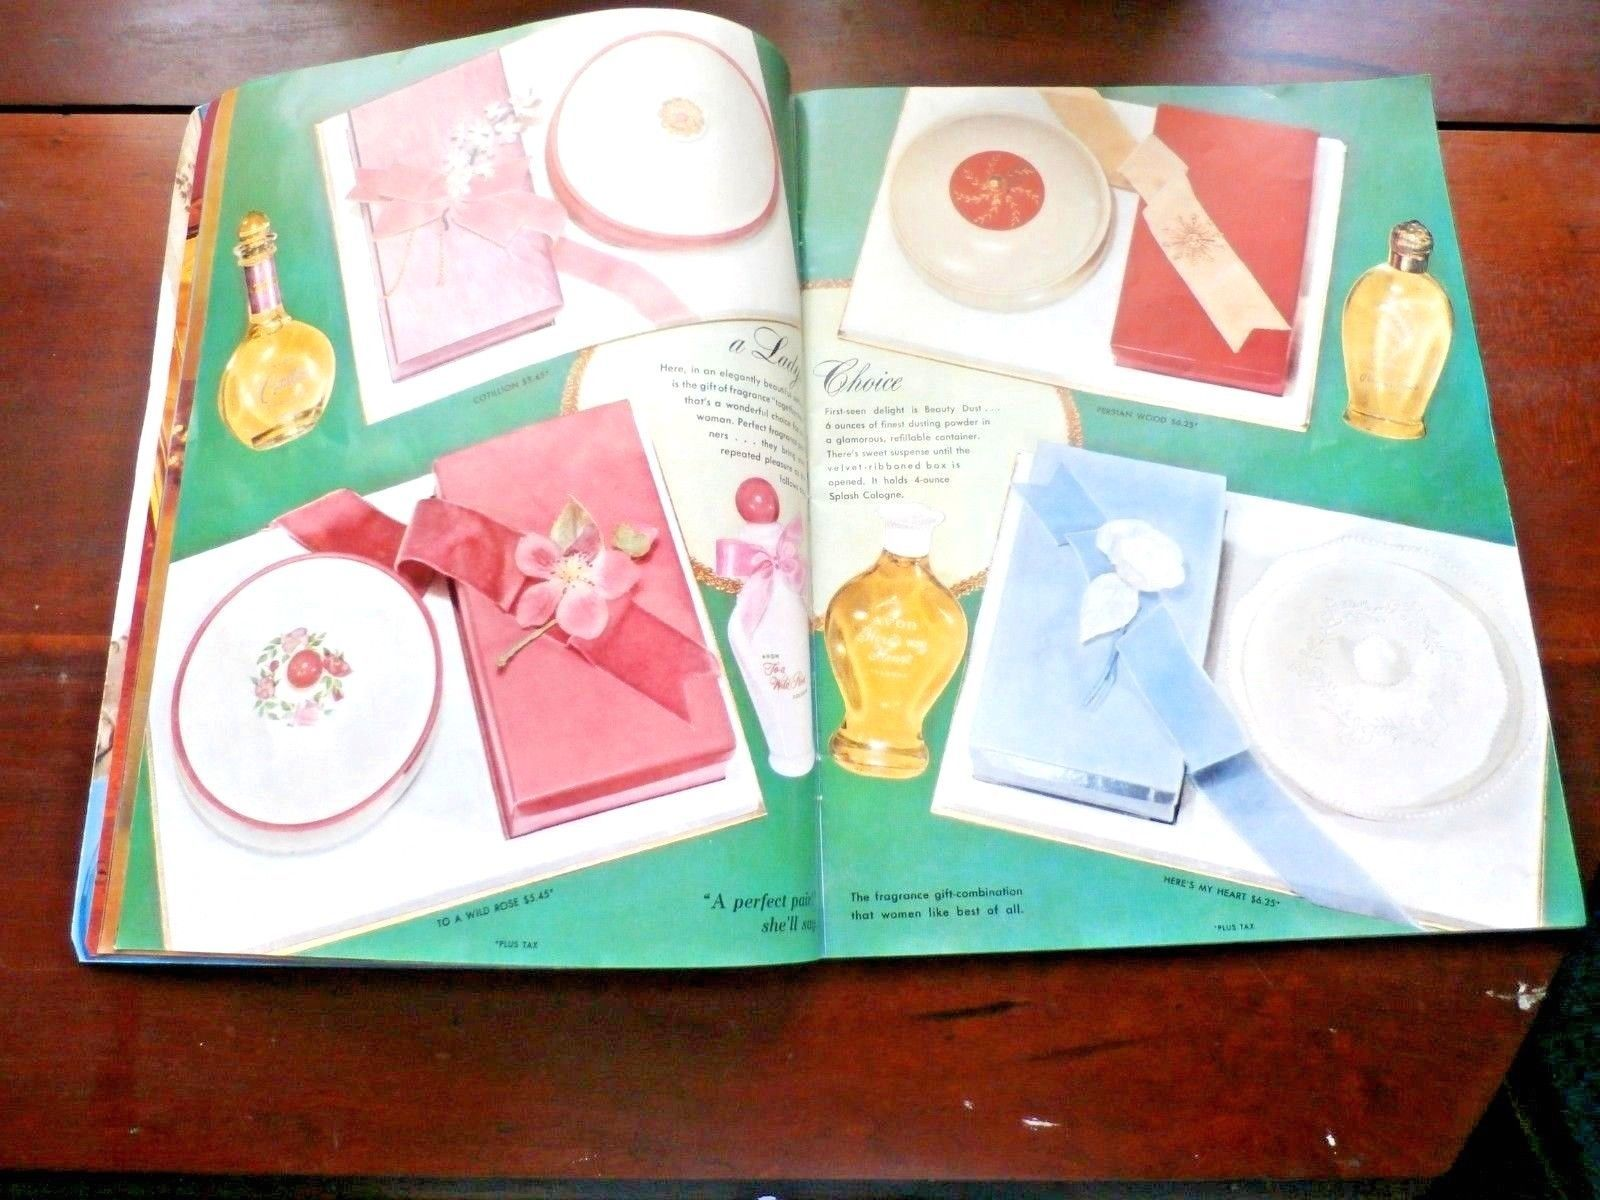 VINTAGE AVON GIFTS CATALOG WITH BEAUTIFUL ILLUSTRATIONS 11 X 8 1/2 INCHES